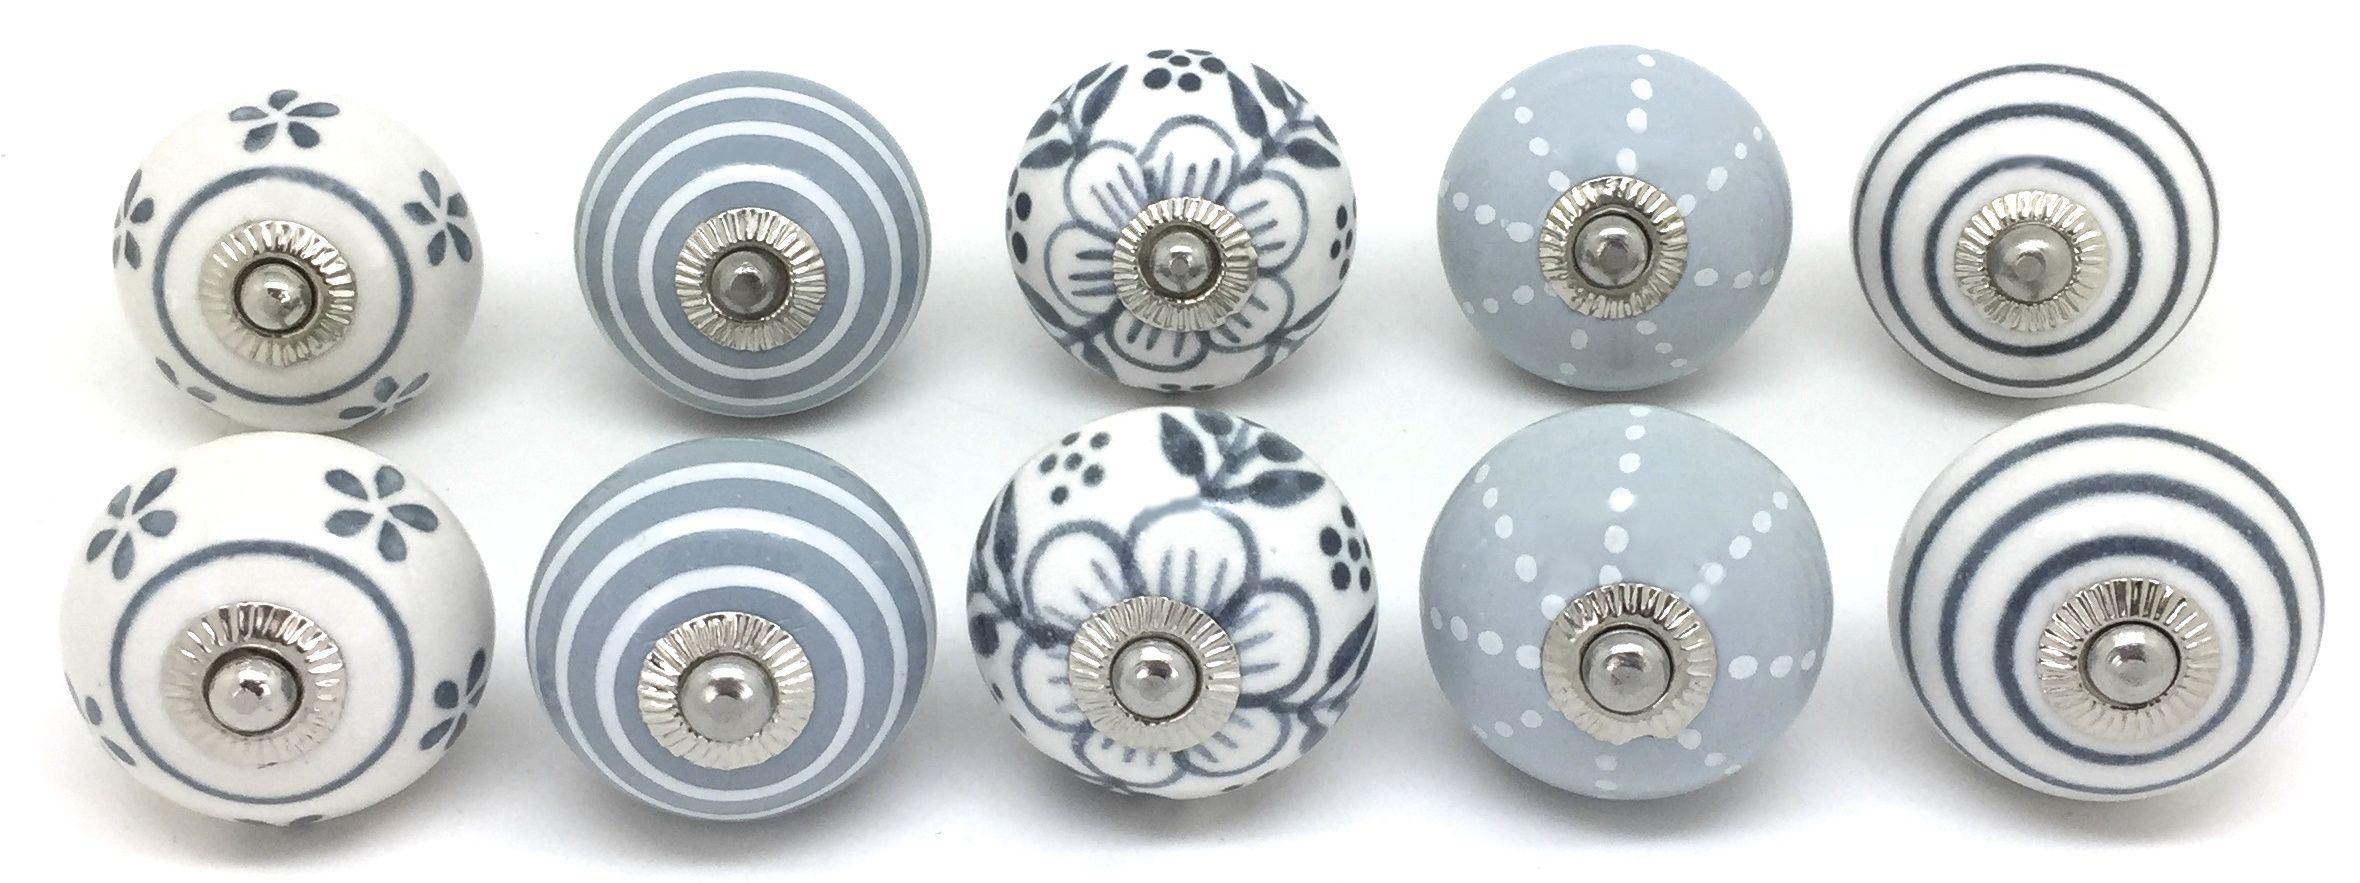 Ceramic Door Knobs, Drawer Knobs, Kitchen Cupboard Door Knobs ...